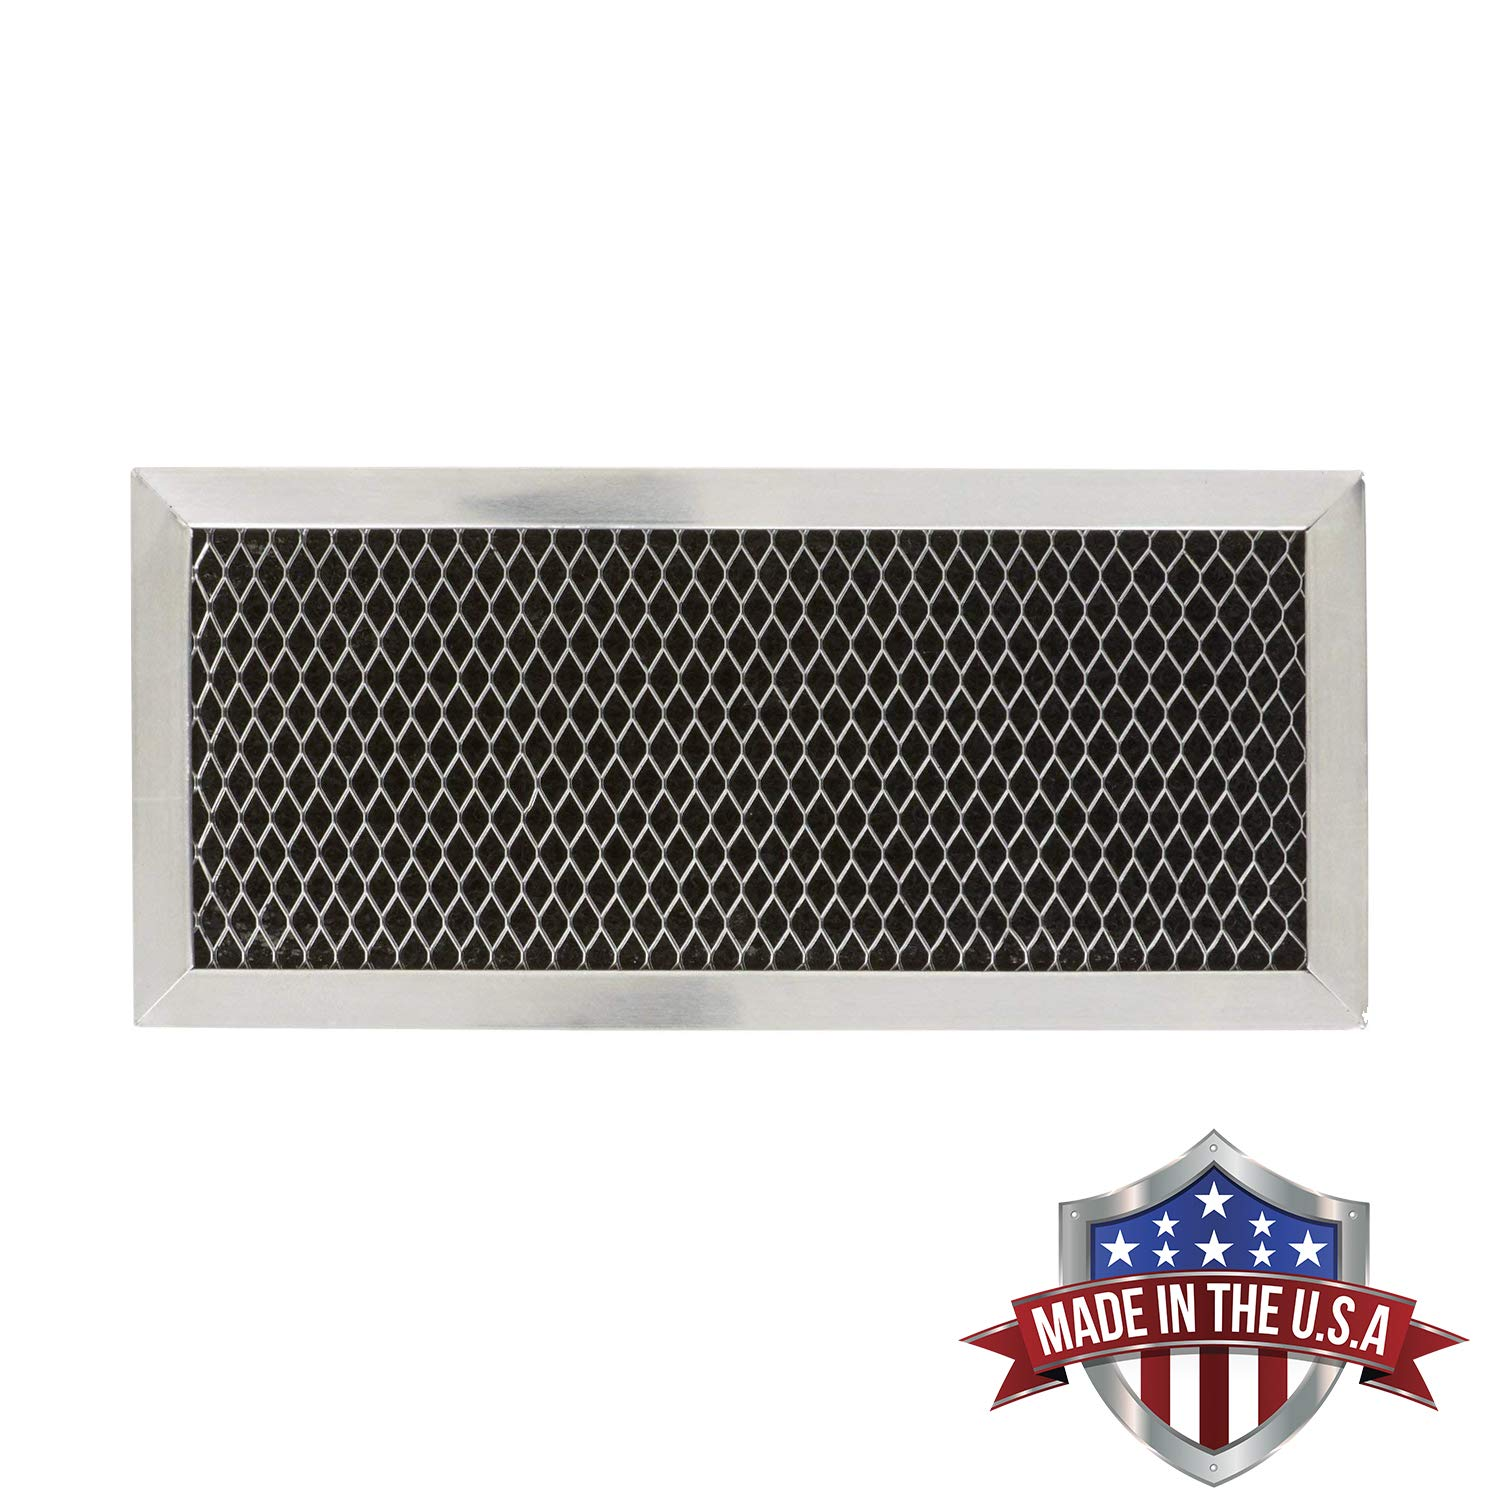 WB02X11544 5230W1A011C WB2X10956 Microwave Recirculating Charcoal Filter Compatible with GE LG Made in USA GE JX81H WB02X10956 1-Pack Zenith 5230W1A011A